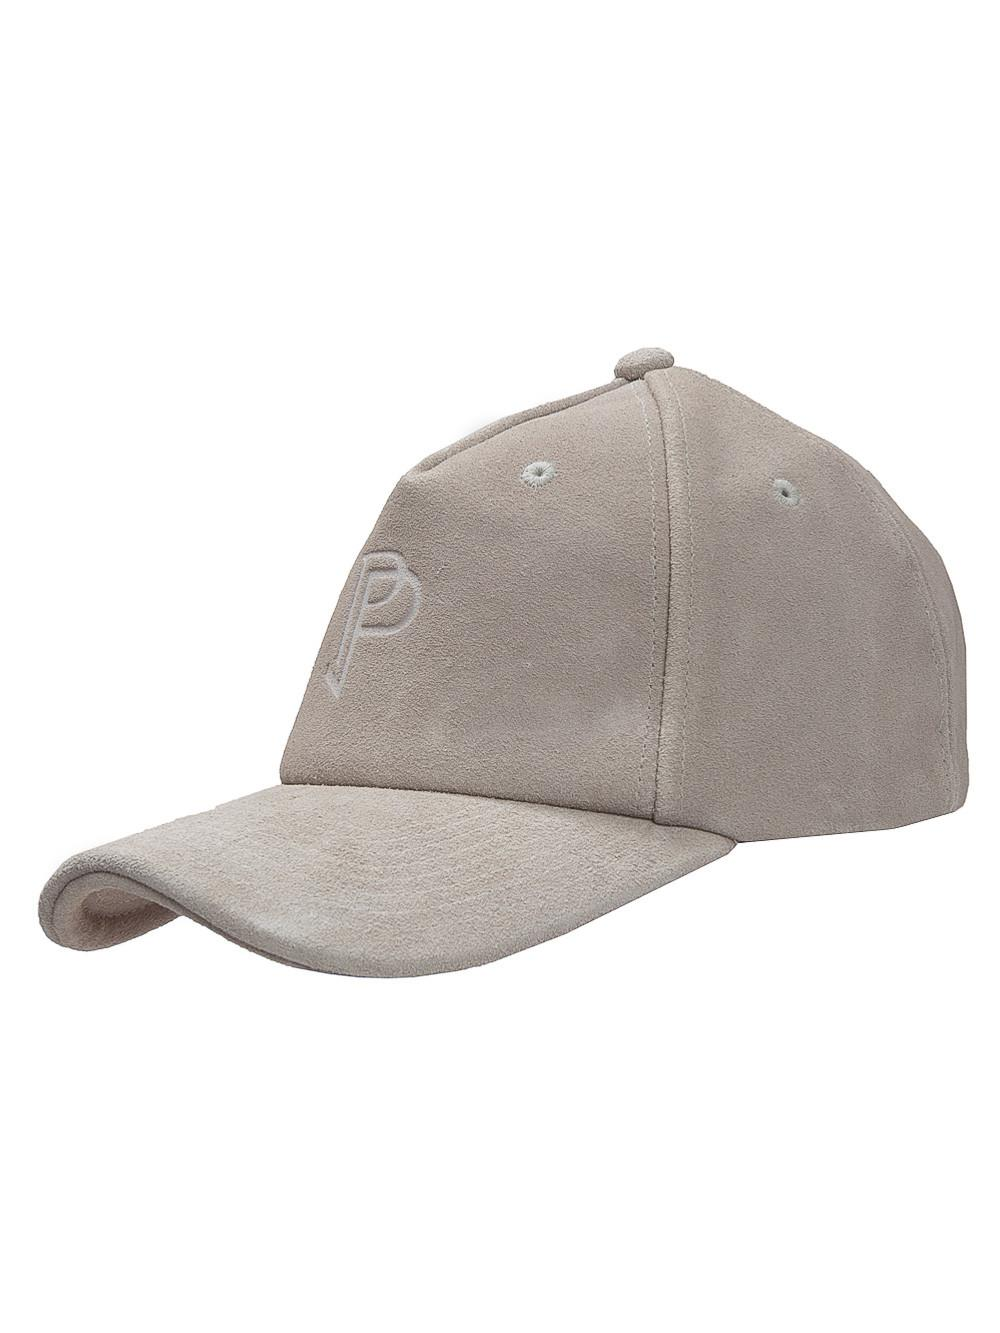 5bd178e3337 Adidas - Gray X Paul Pobga Cap for Men - Lyst. View fullscreen